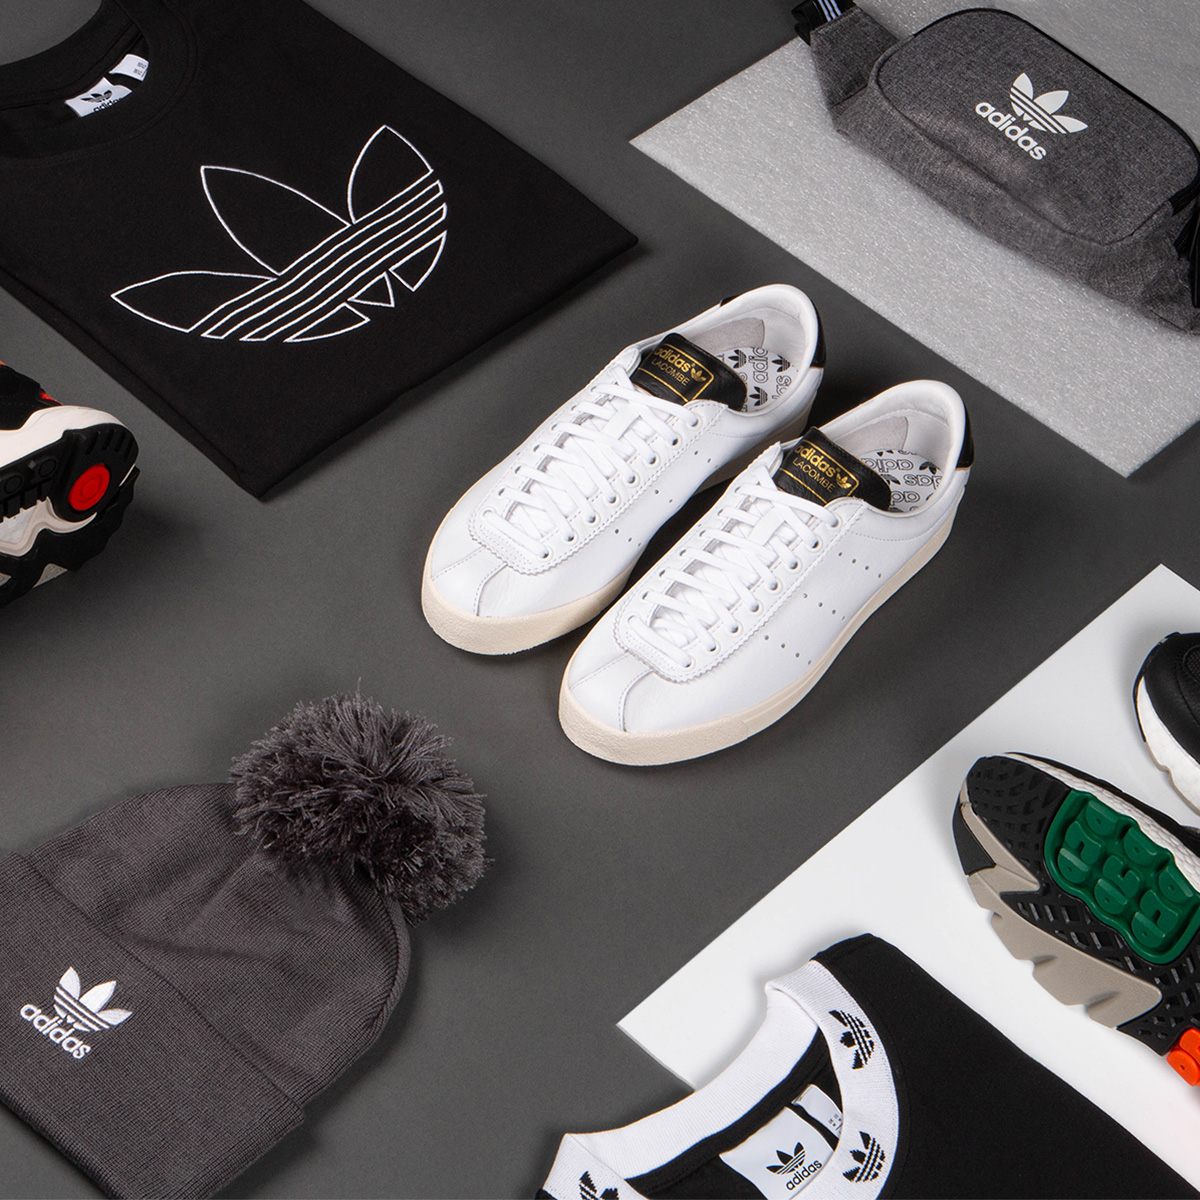 Adidas trainers are in the centre of a grey floor, surrounded by a neatly folded adidas t-shirt, adidas bum-bag, and an adidas beanie in shades of grey, white and black.